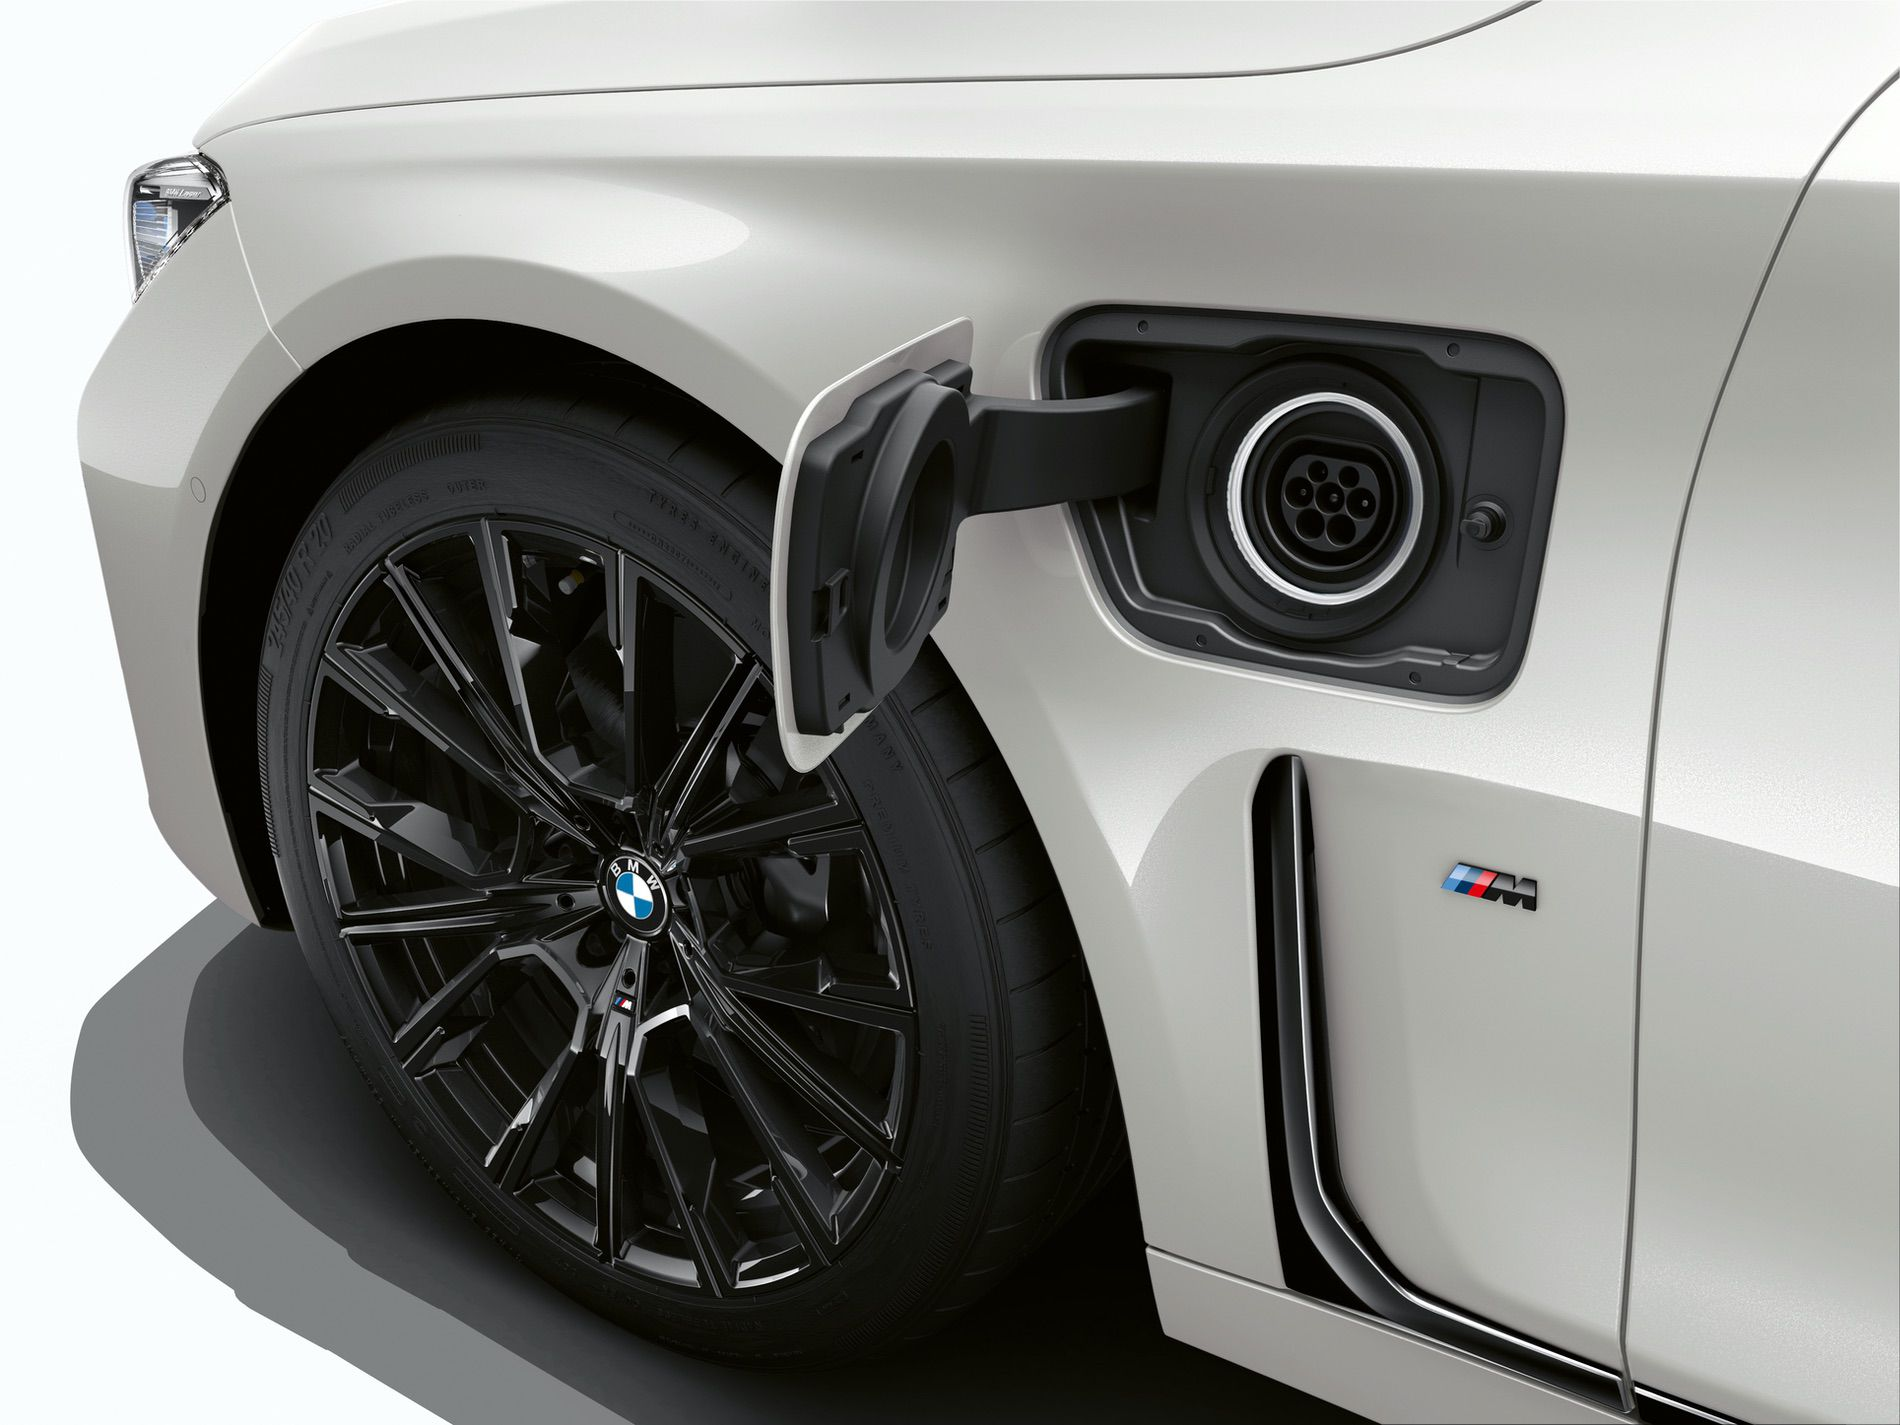 SPIED: BMW testing what appears to be an early i7 electric prototype